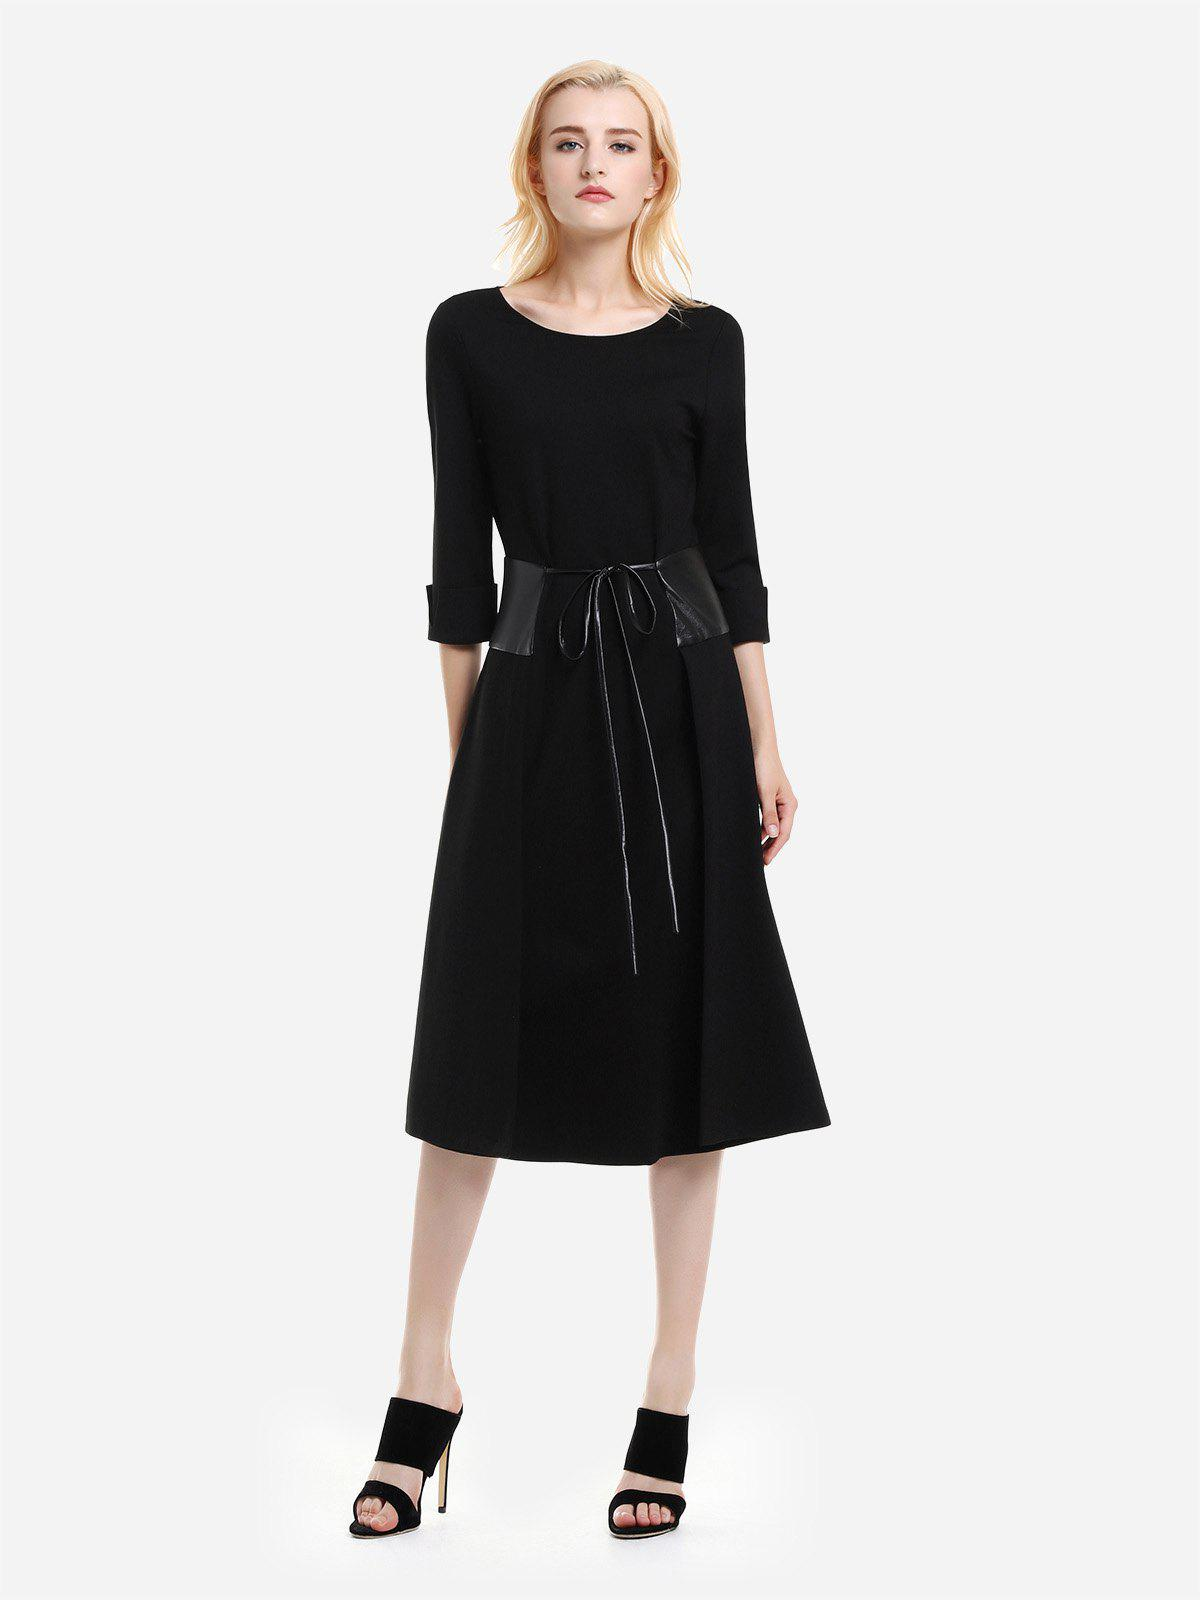 ZAN.STYLE Below the Knee Long Sleeve Dress - BLACK 2XL